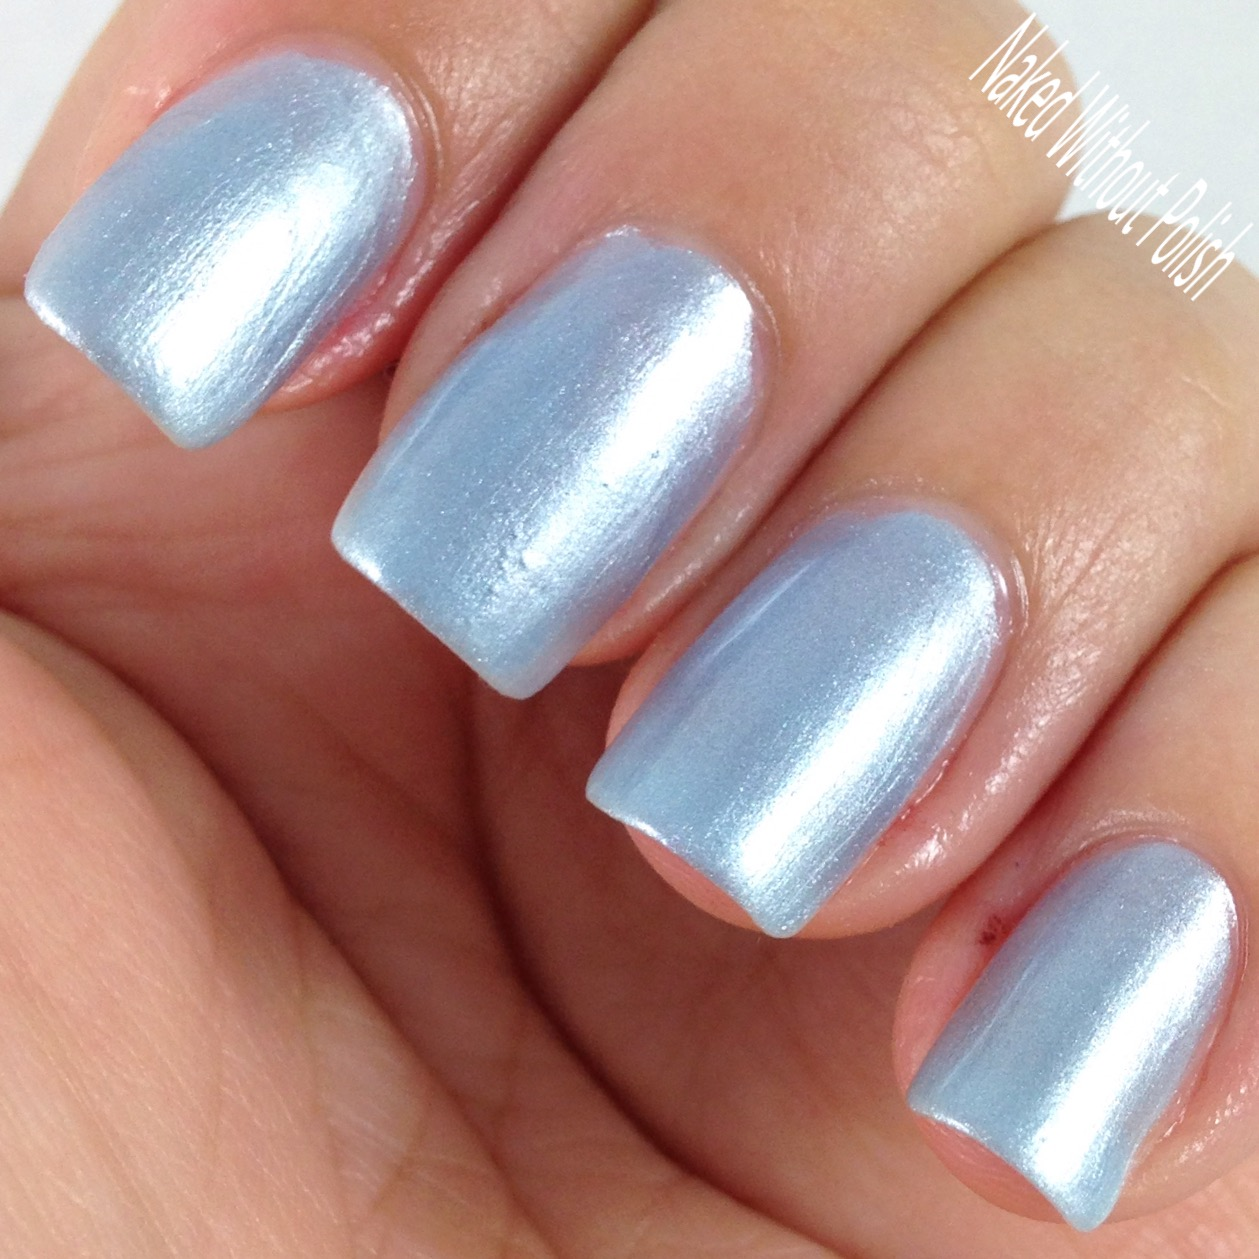 My-Stunning-Nails-Blueberry-Macaroon-7